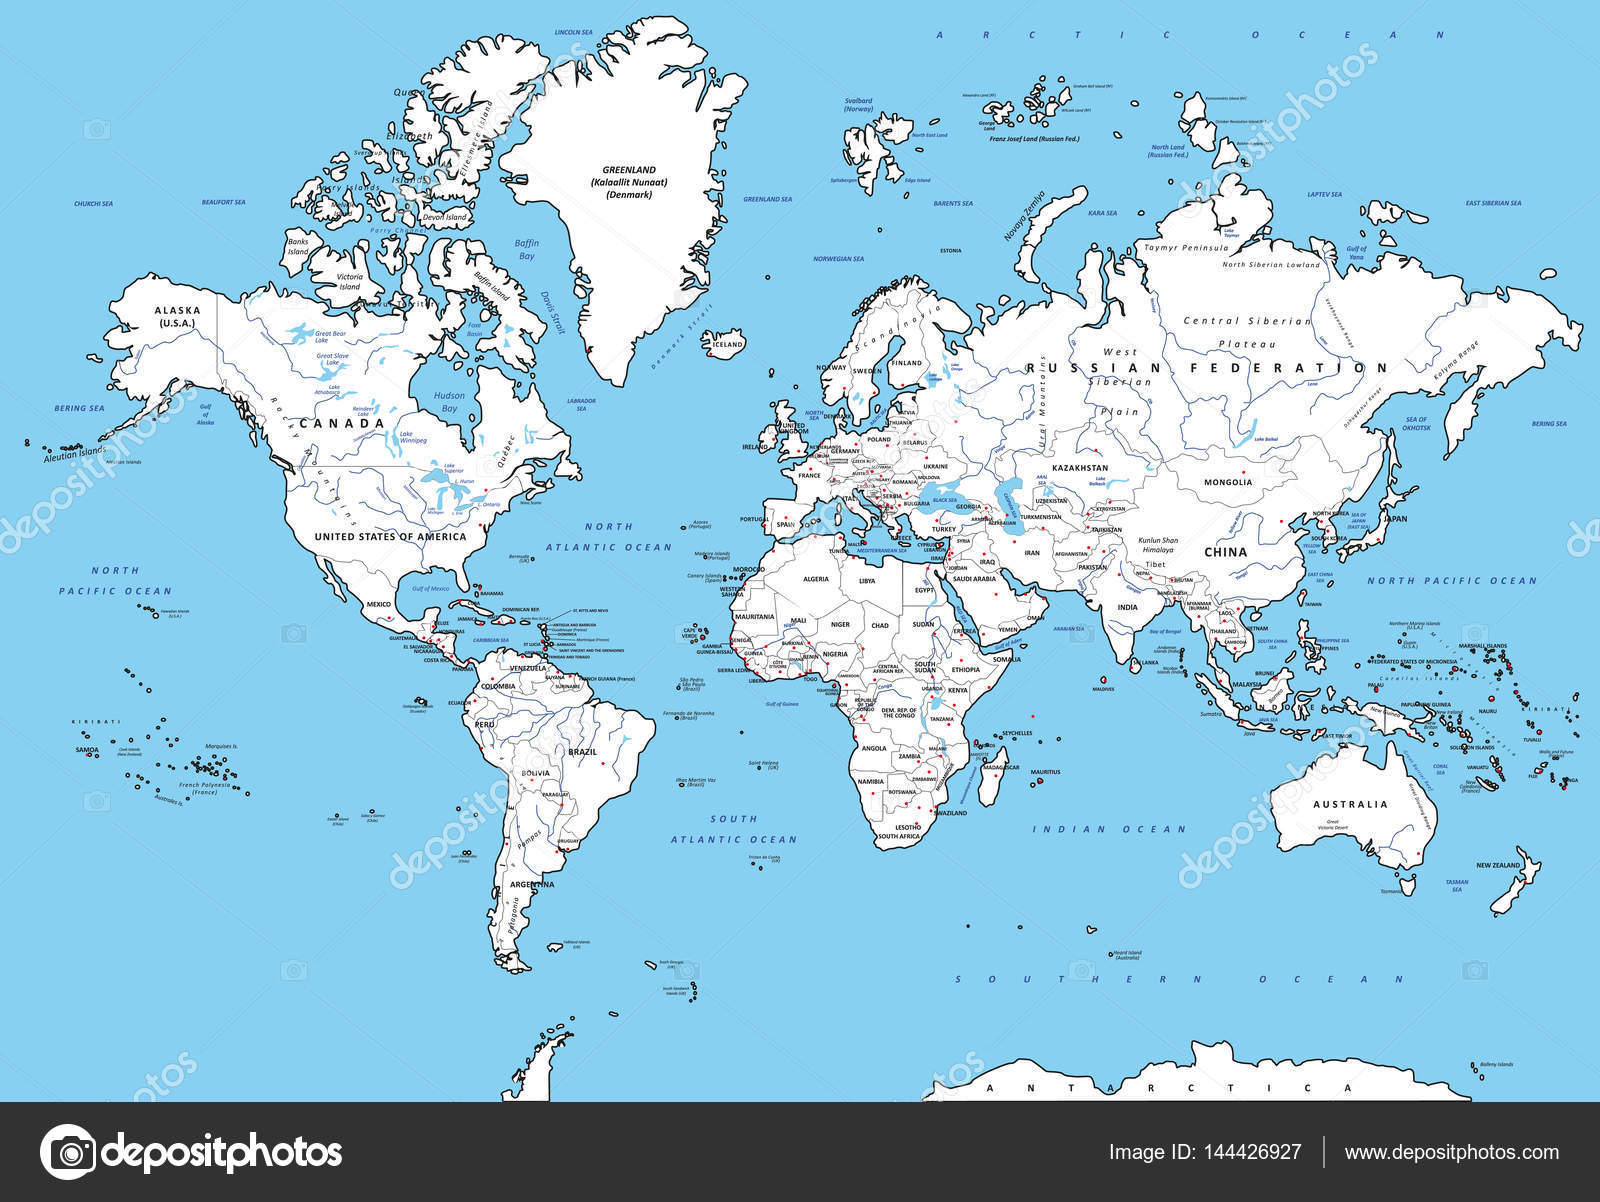 Detailed political world map stock vector zlatovlaska2008 144426927 highly detailed political world map with capitals rivers separated layers vector illustration vector by zlatovlaska2008 gumiabroncs Images